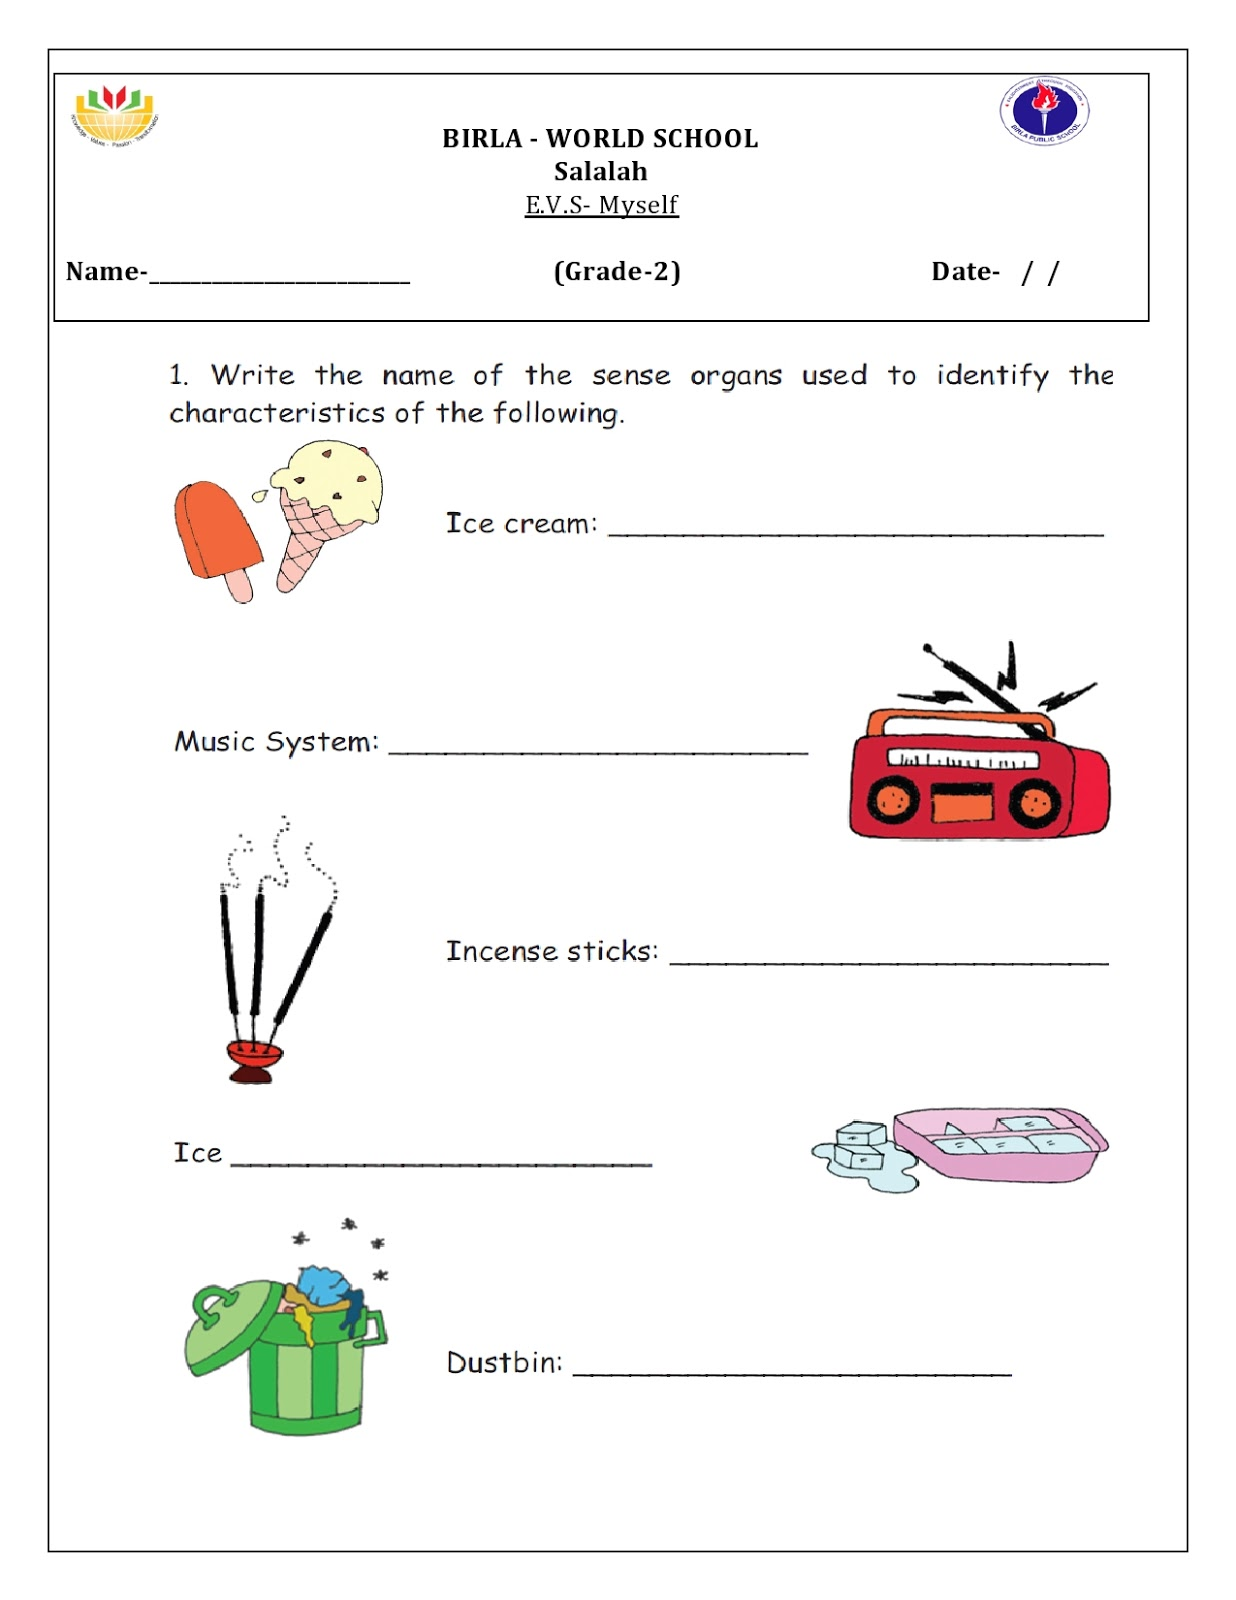 Birla World School Oman Homework For Grade 2 B On 26 5 16